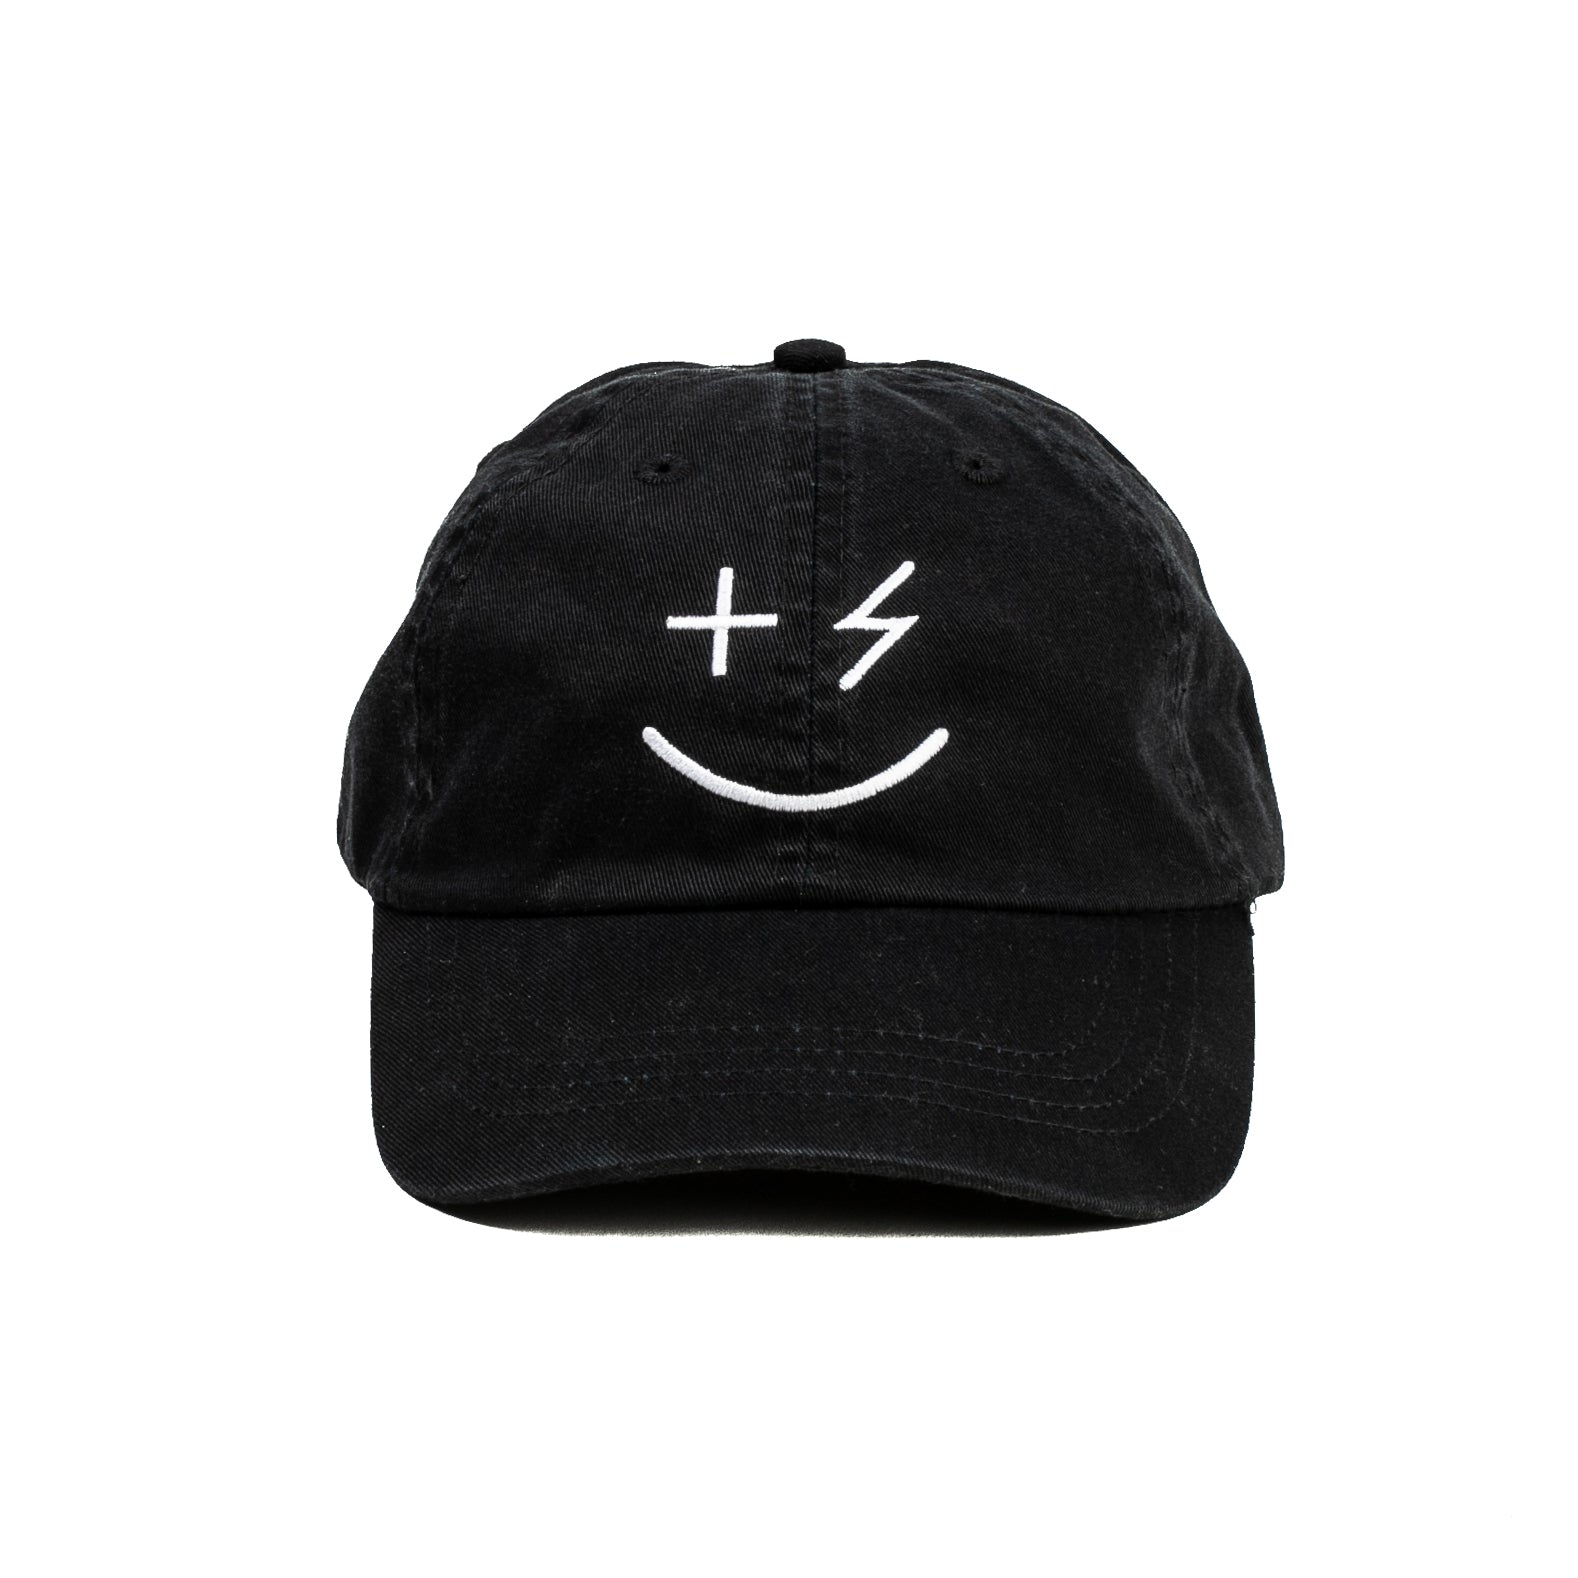 PPP Smiley Cap- Black - +Positive People Posse+